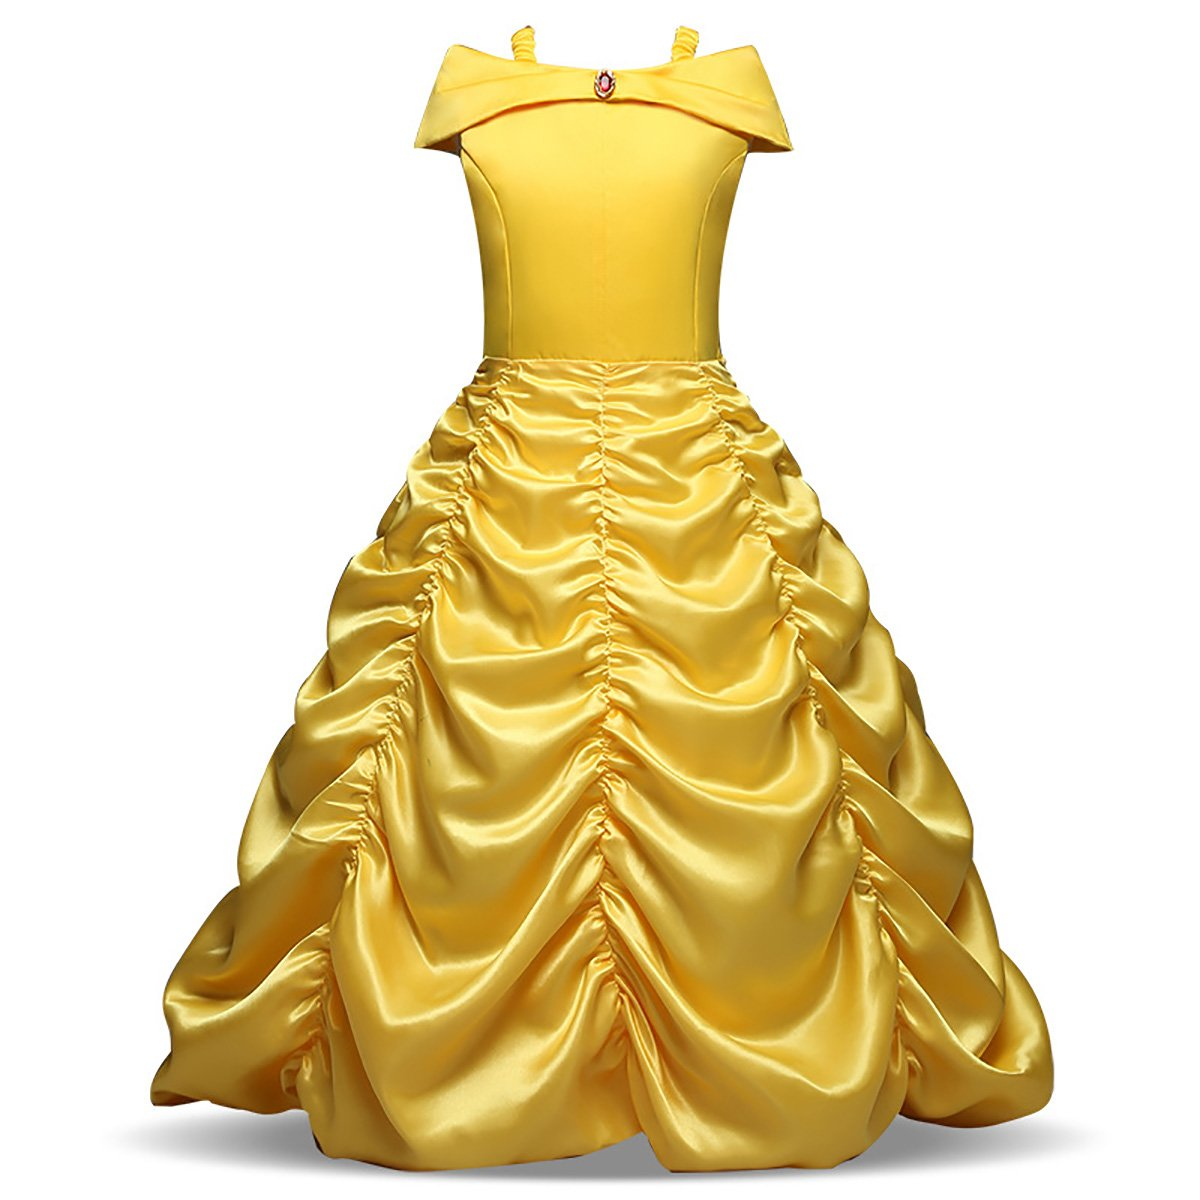 Enterlife Little Girls' Belle Princess Costumes Layered Off Shoulder Princess Disney Dress up Halloween